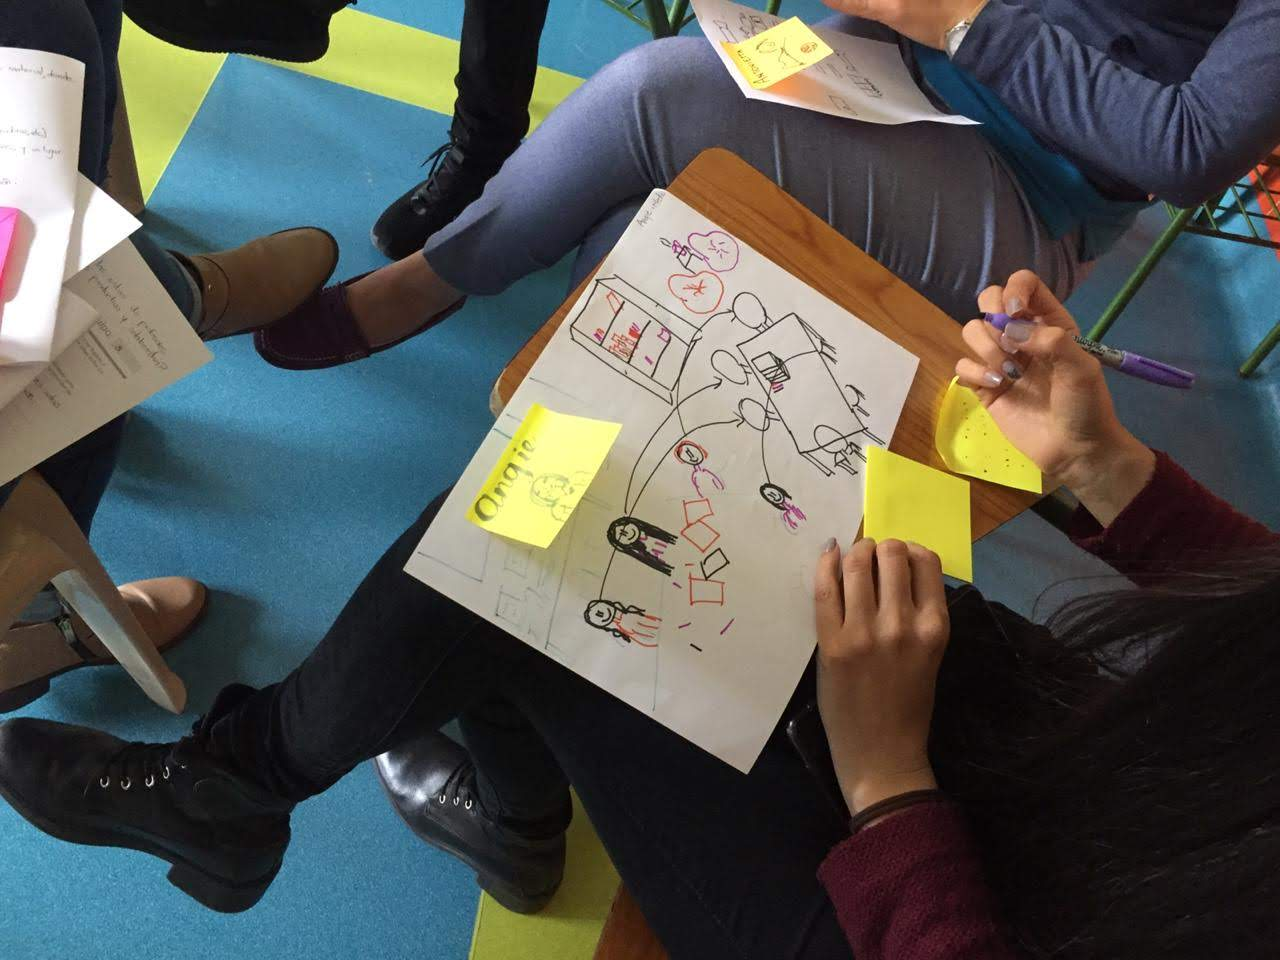 Design Thinking para educadores: un enfoque para transformar la educación